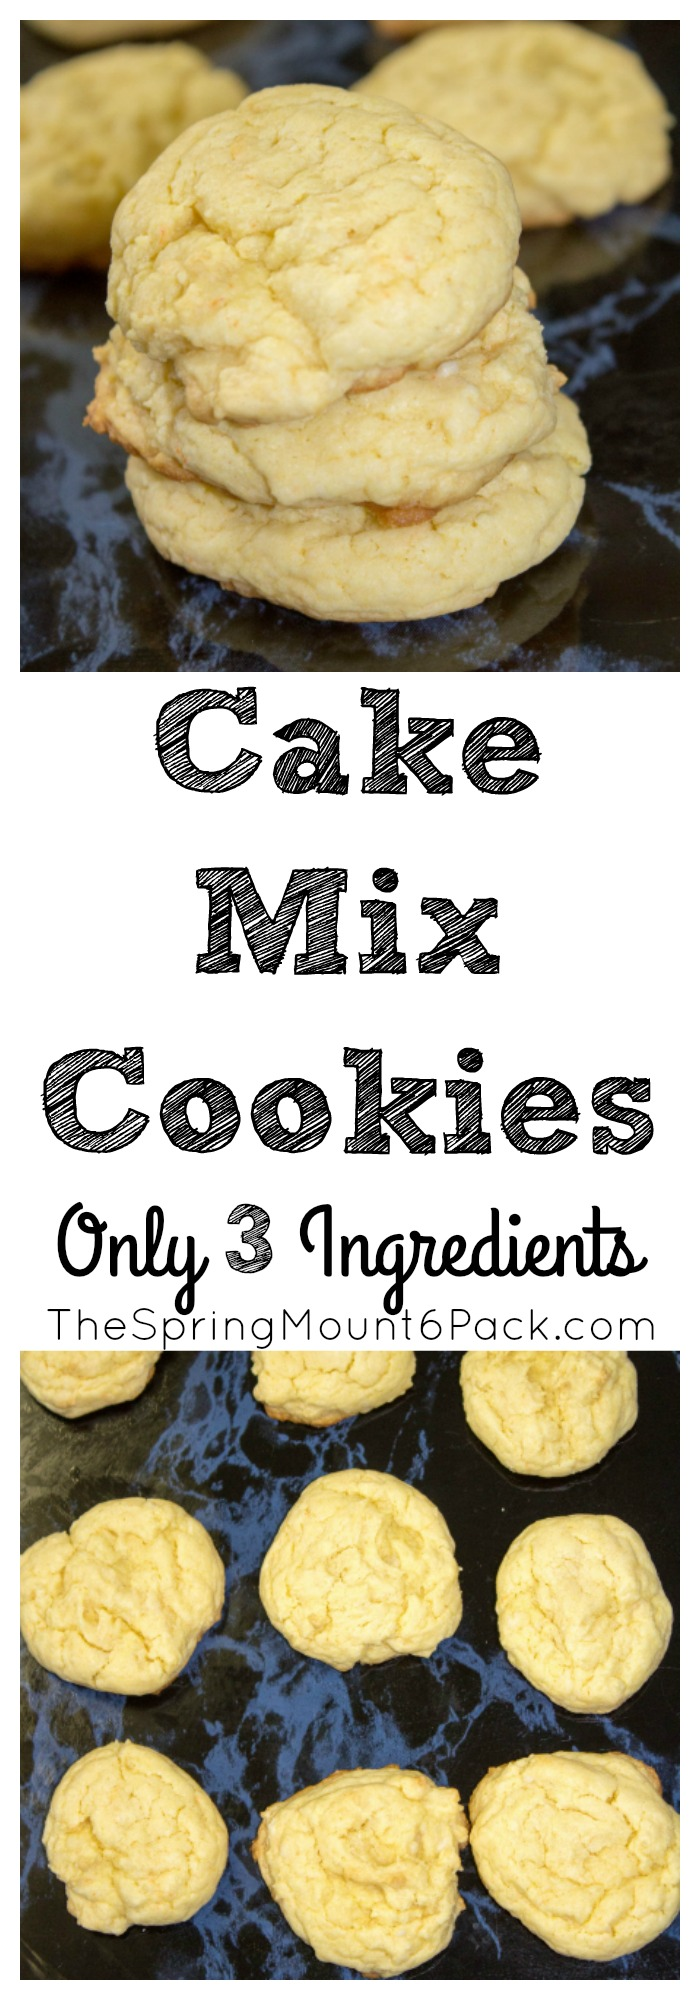 Cake mix cookies are a fast dessert that can be made easily with only 3 ingredients. Easy to make cookies that can be made in a lot of different flavors.